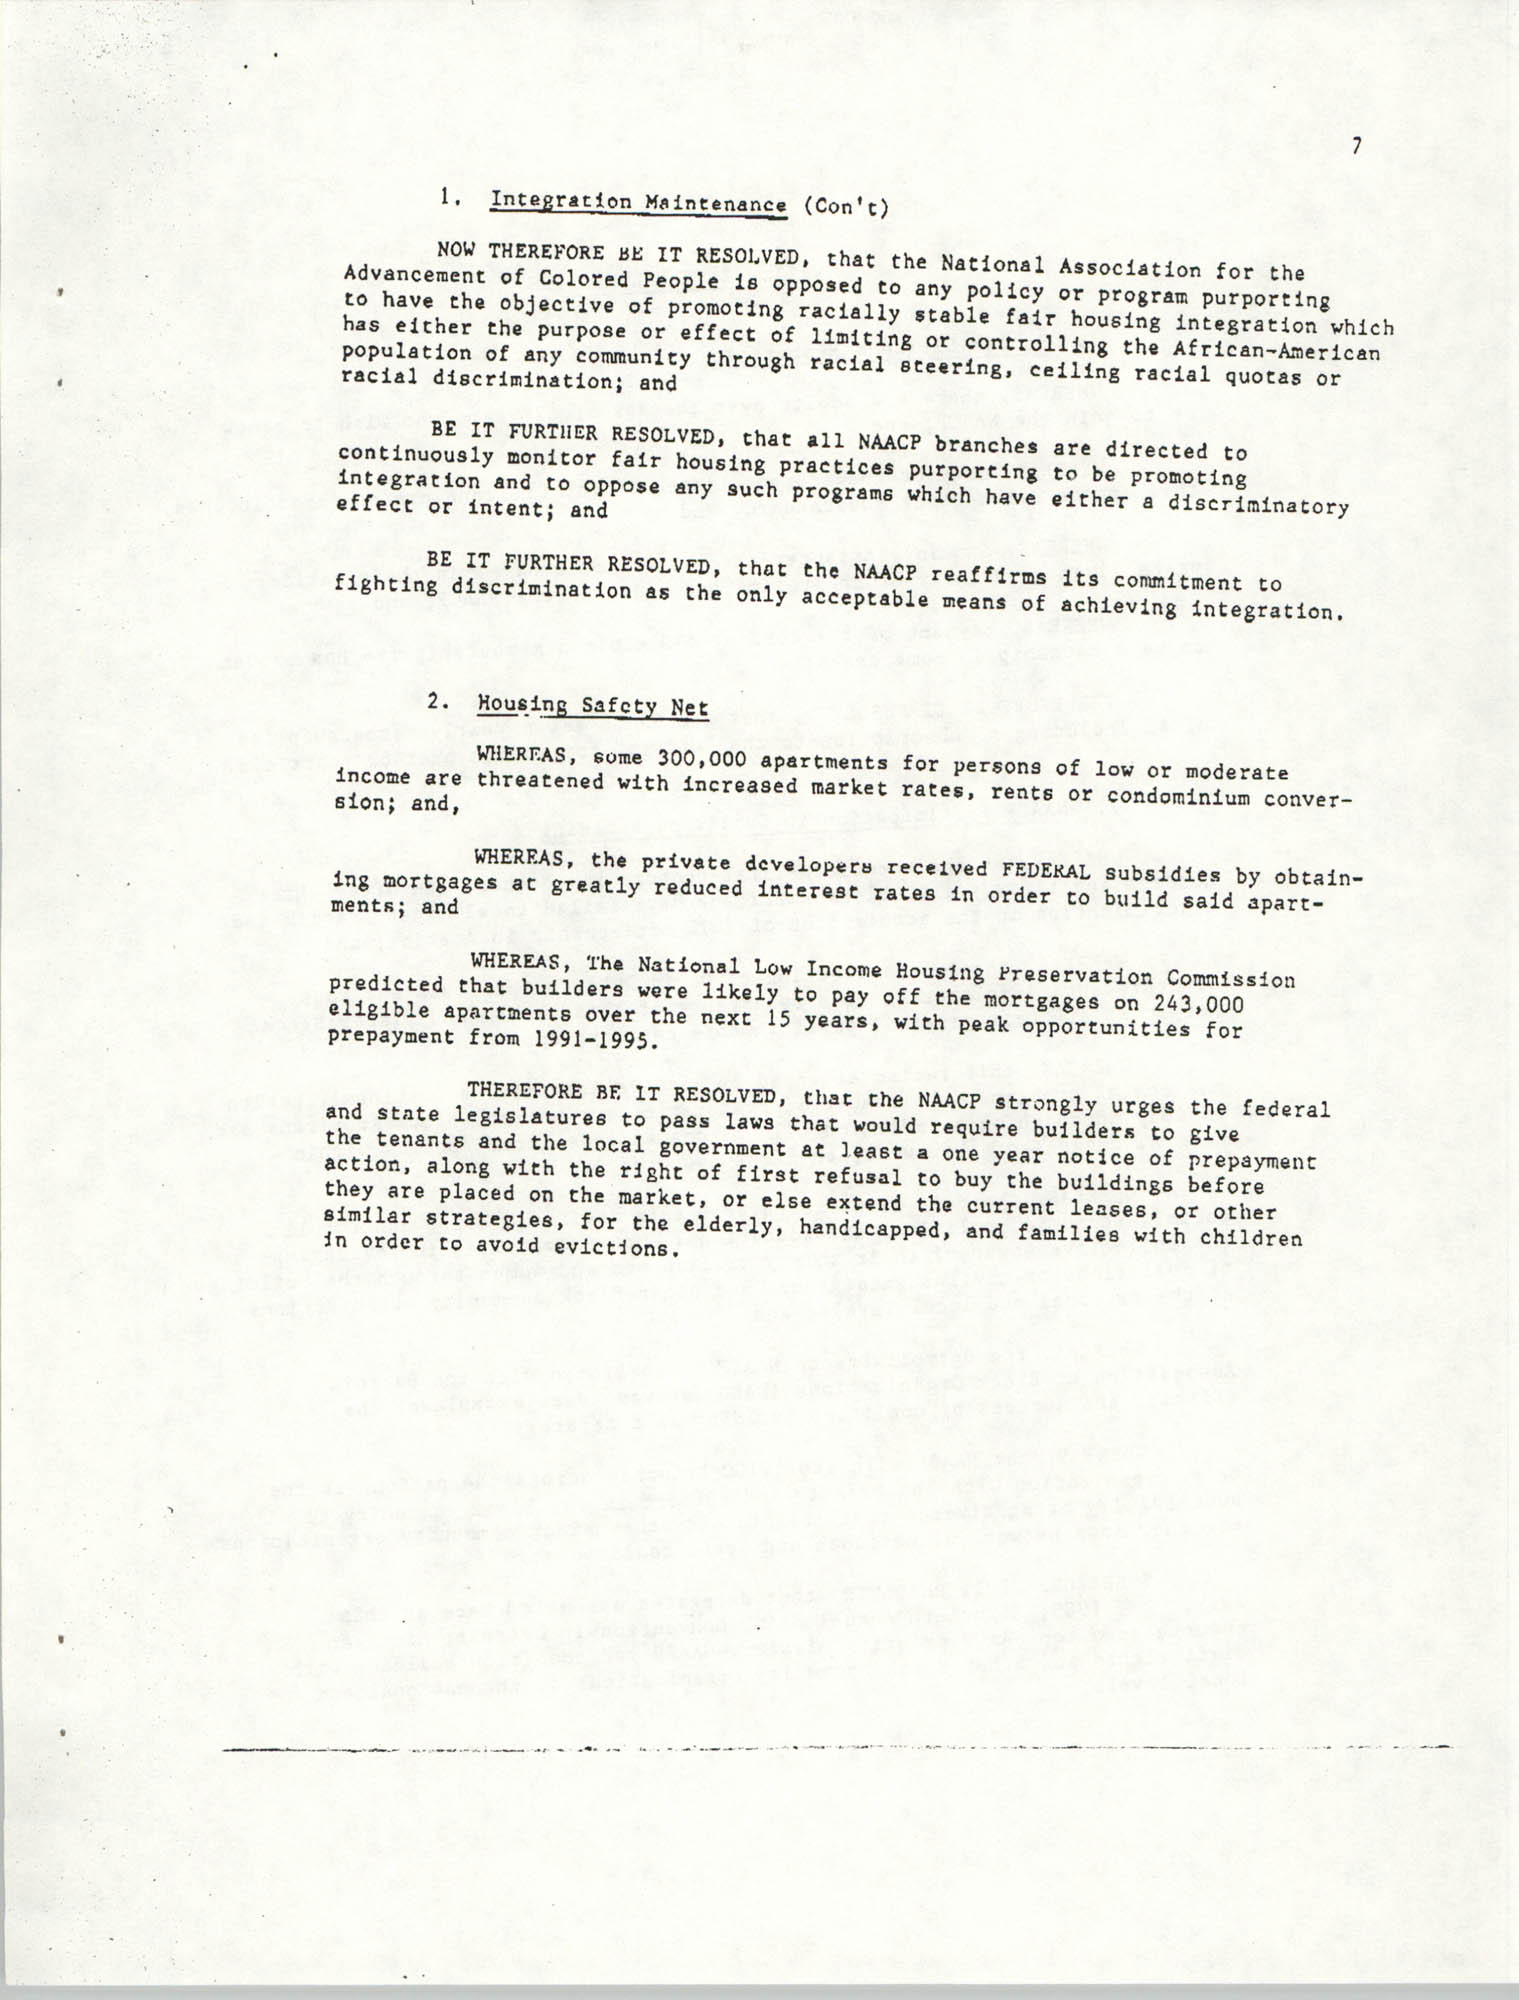 Resolutions Submitted Under Article X, Section 2 of the Constitution of the NAACP, Page 7